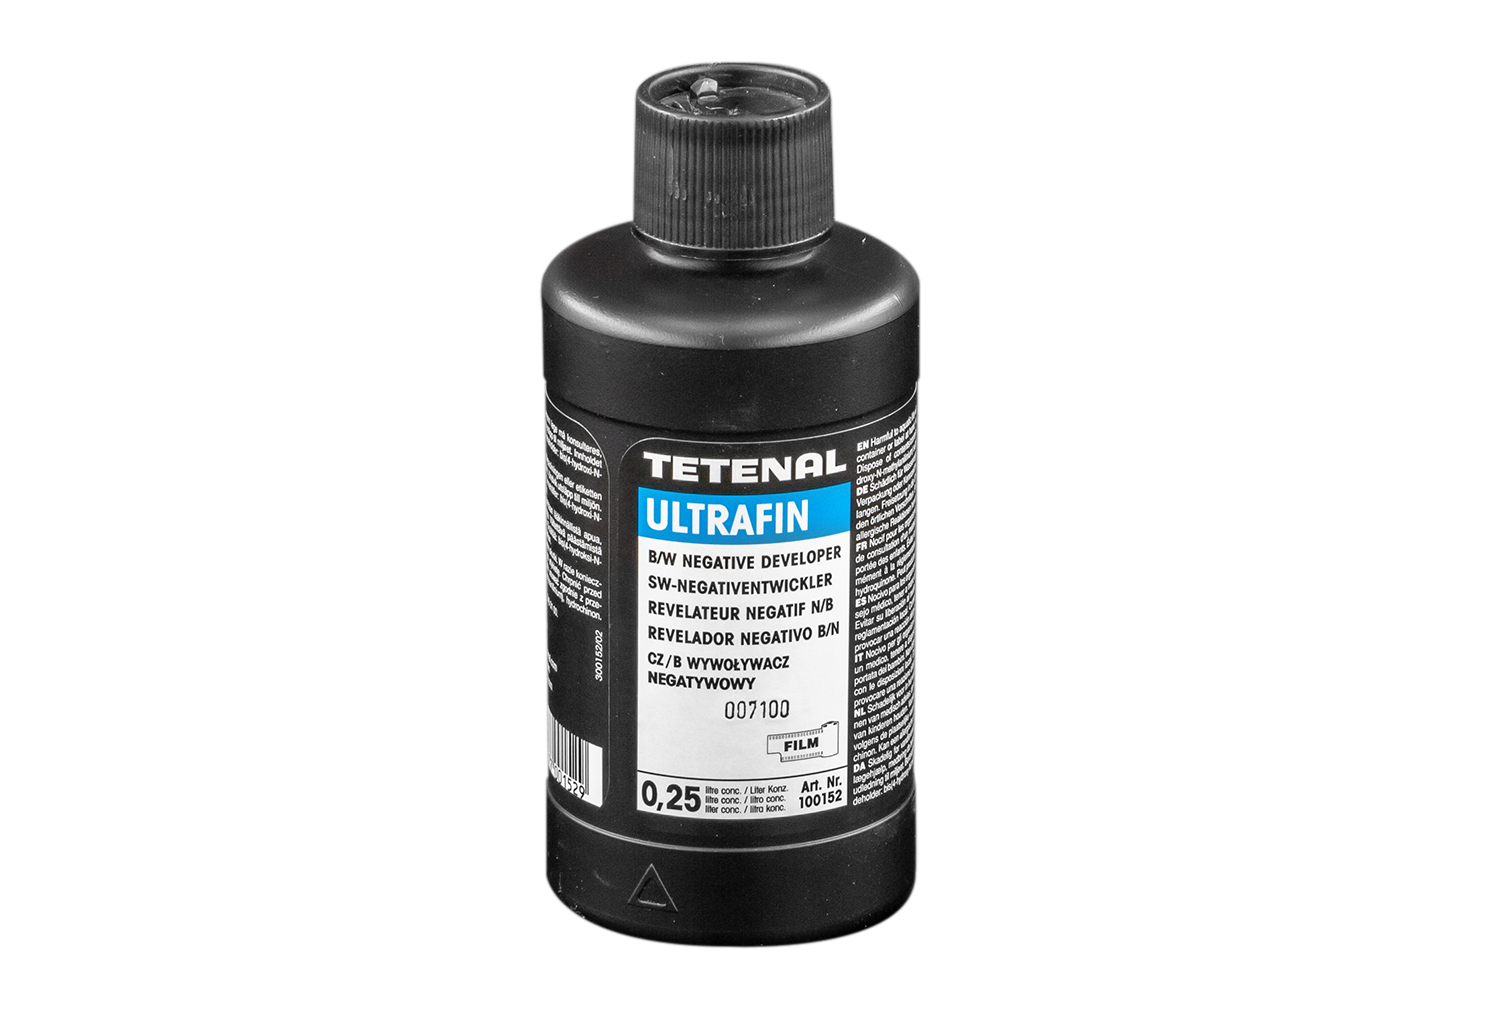 TETENAL Ultrafin liquid